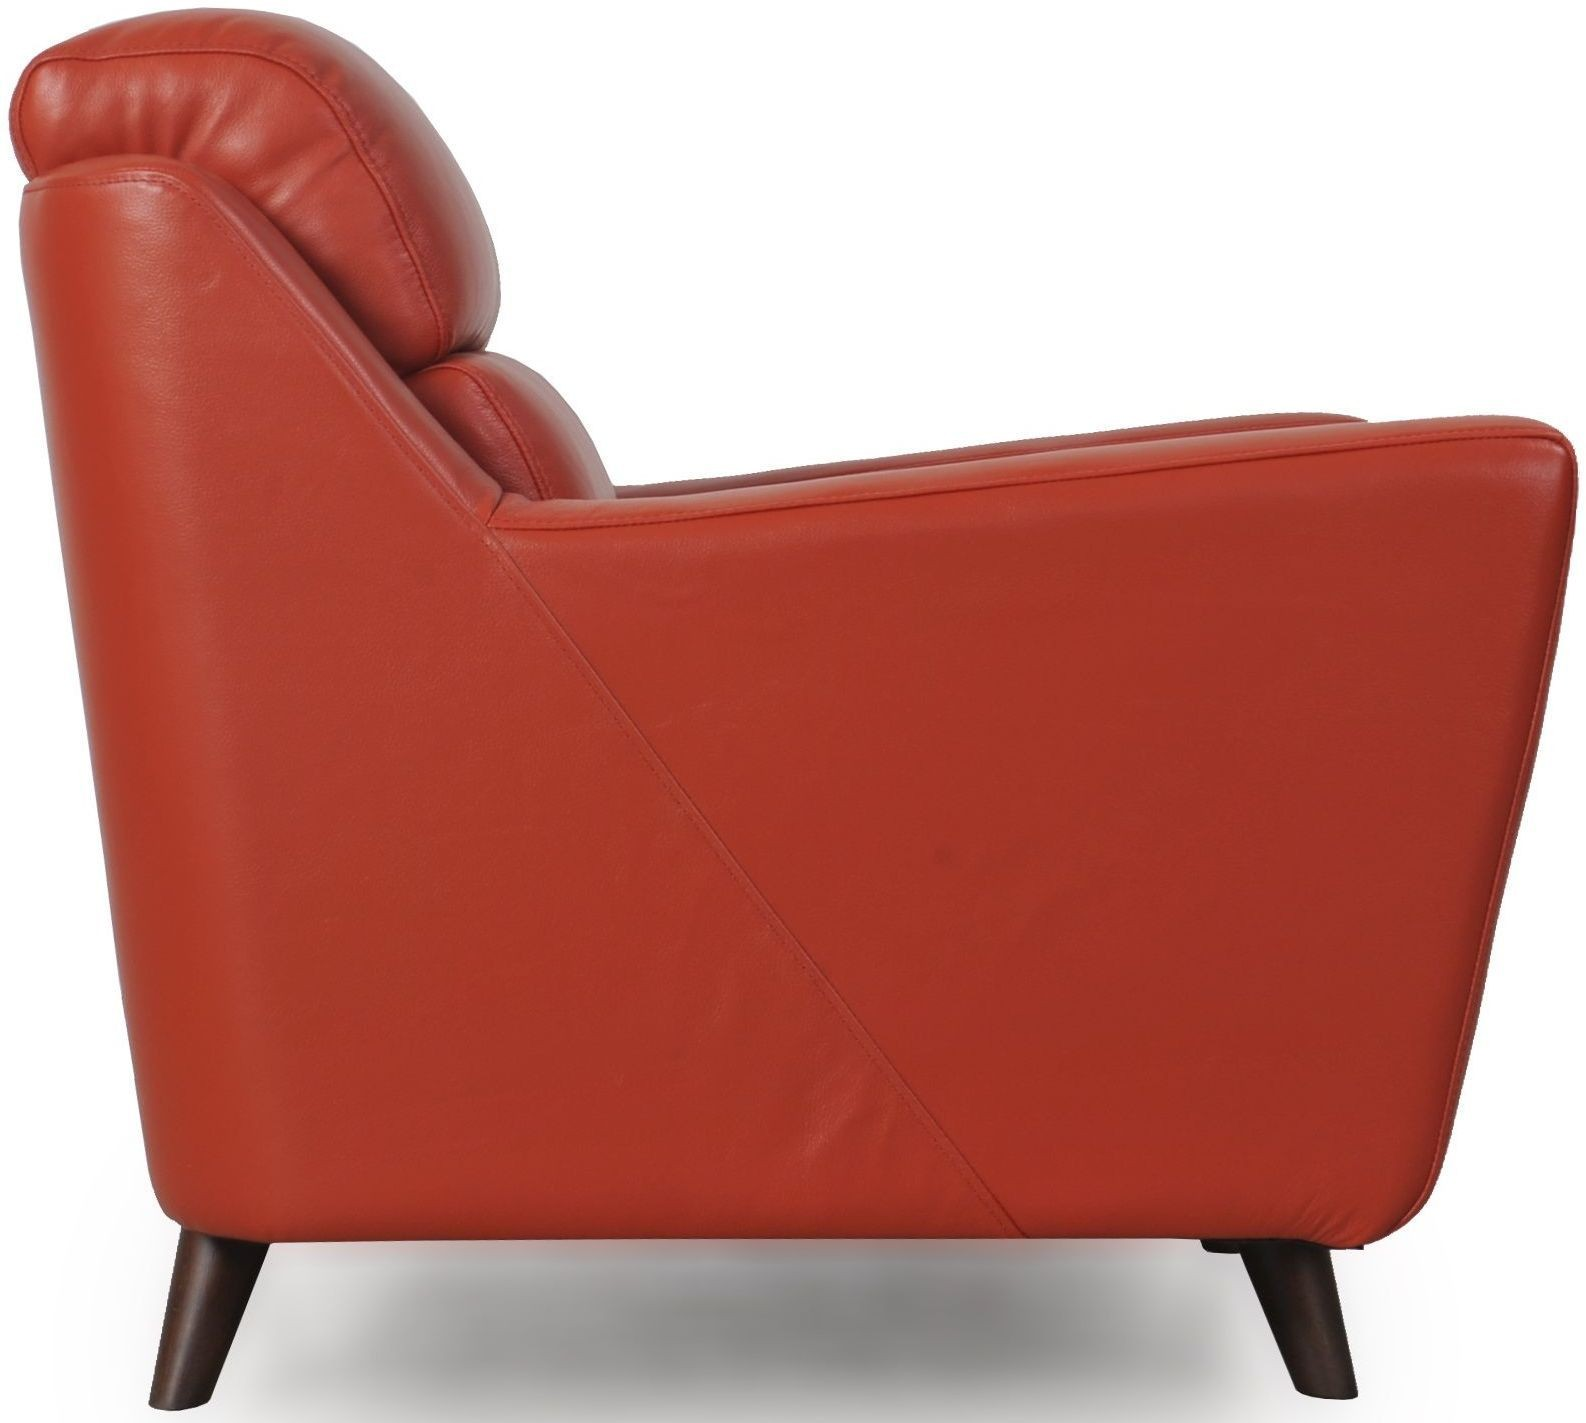 Lucia Brick Red Leather Loveseat 35802b1349 Moroni